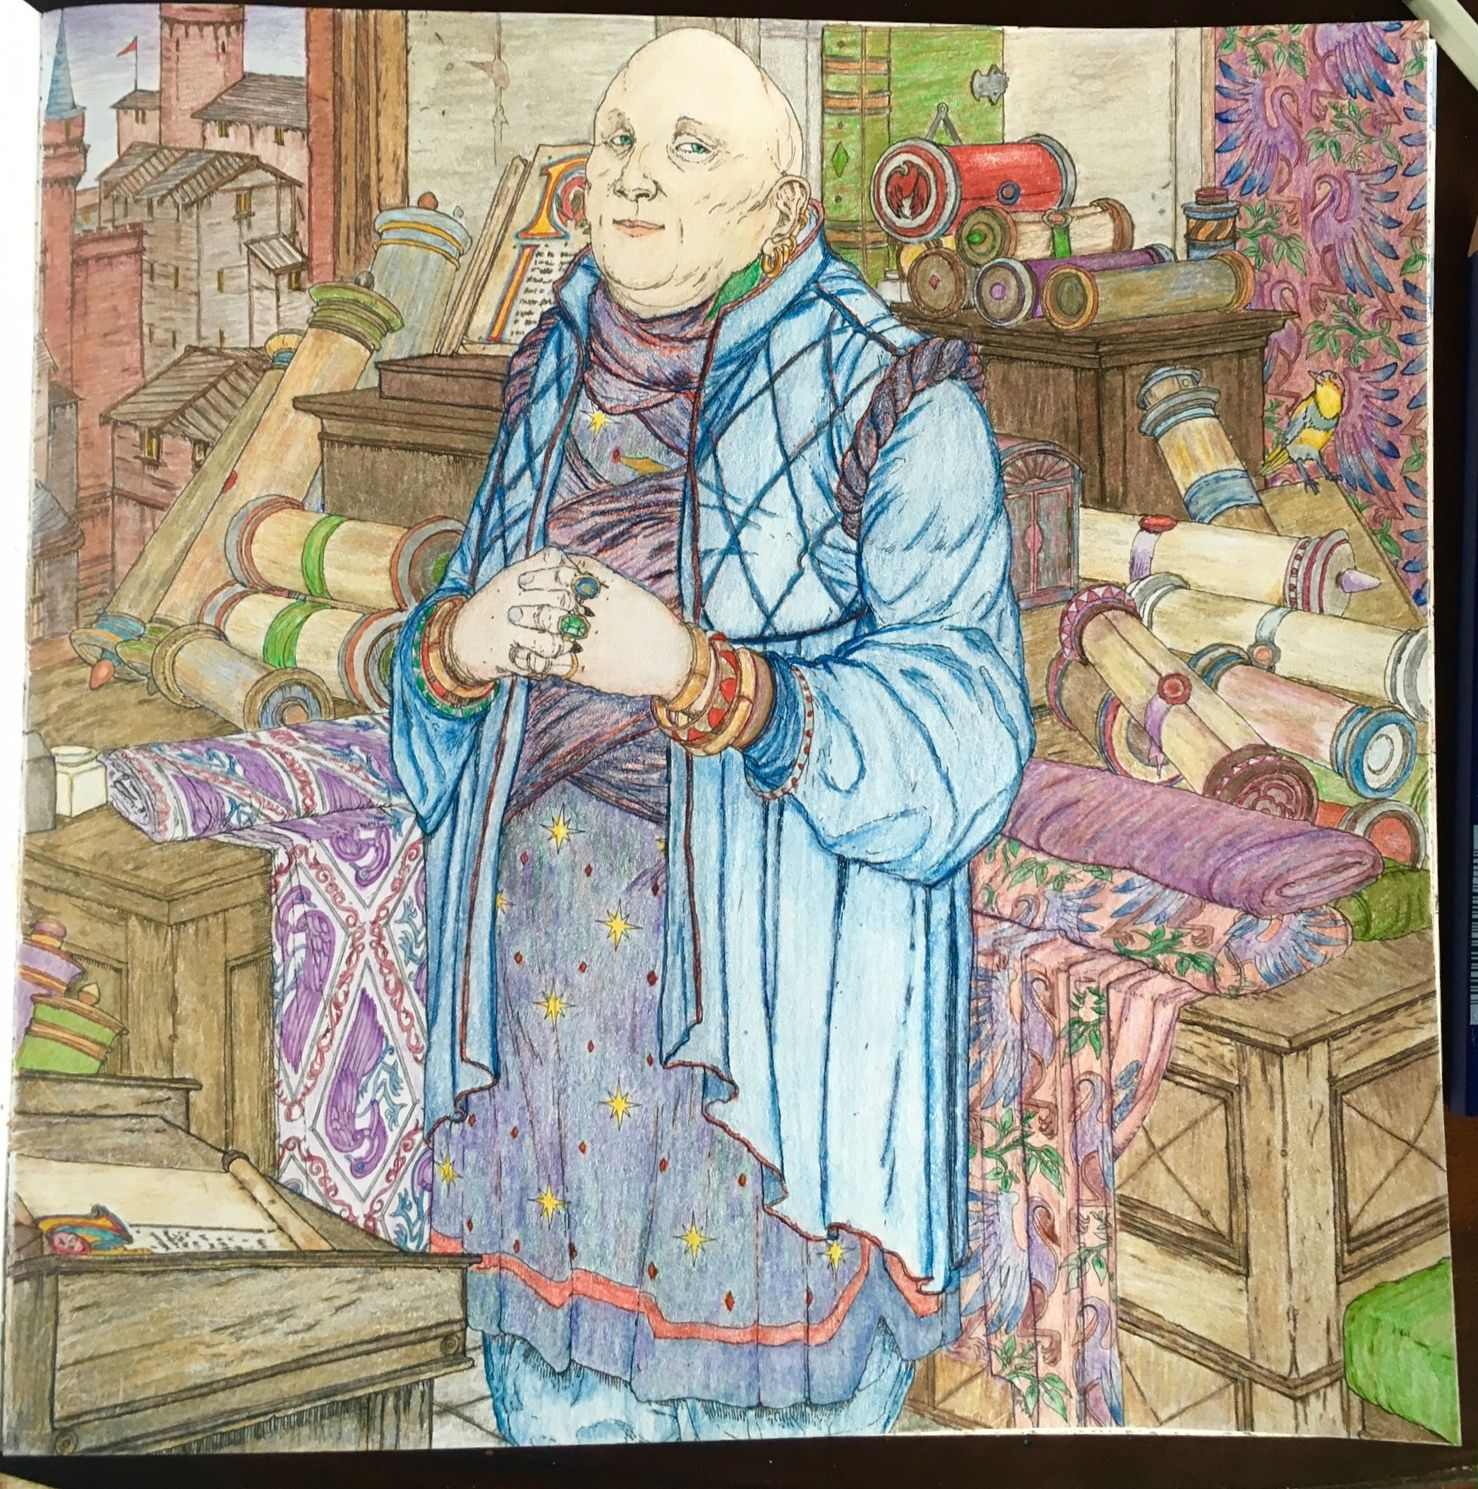 Just Finished Varys From The Game Of Thrones Coloring Book Using Caran DAche Pablo And Prismacolor Verithin Pencils My First Time Skin